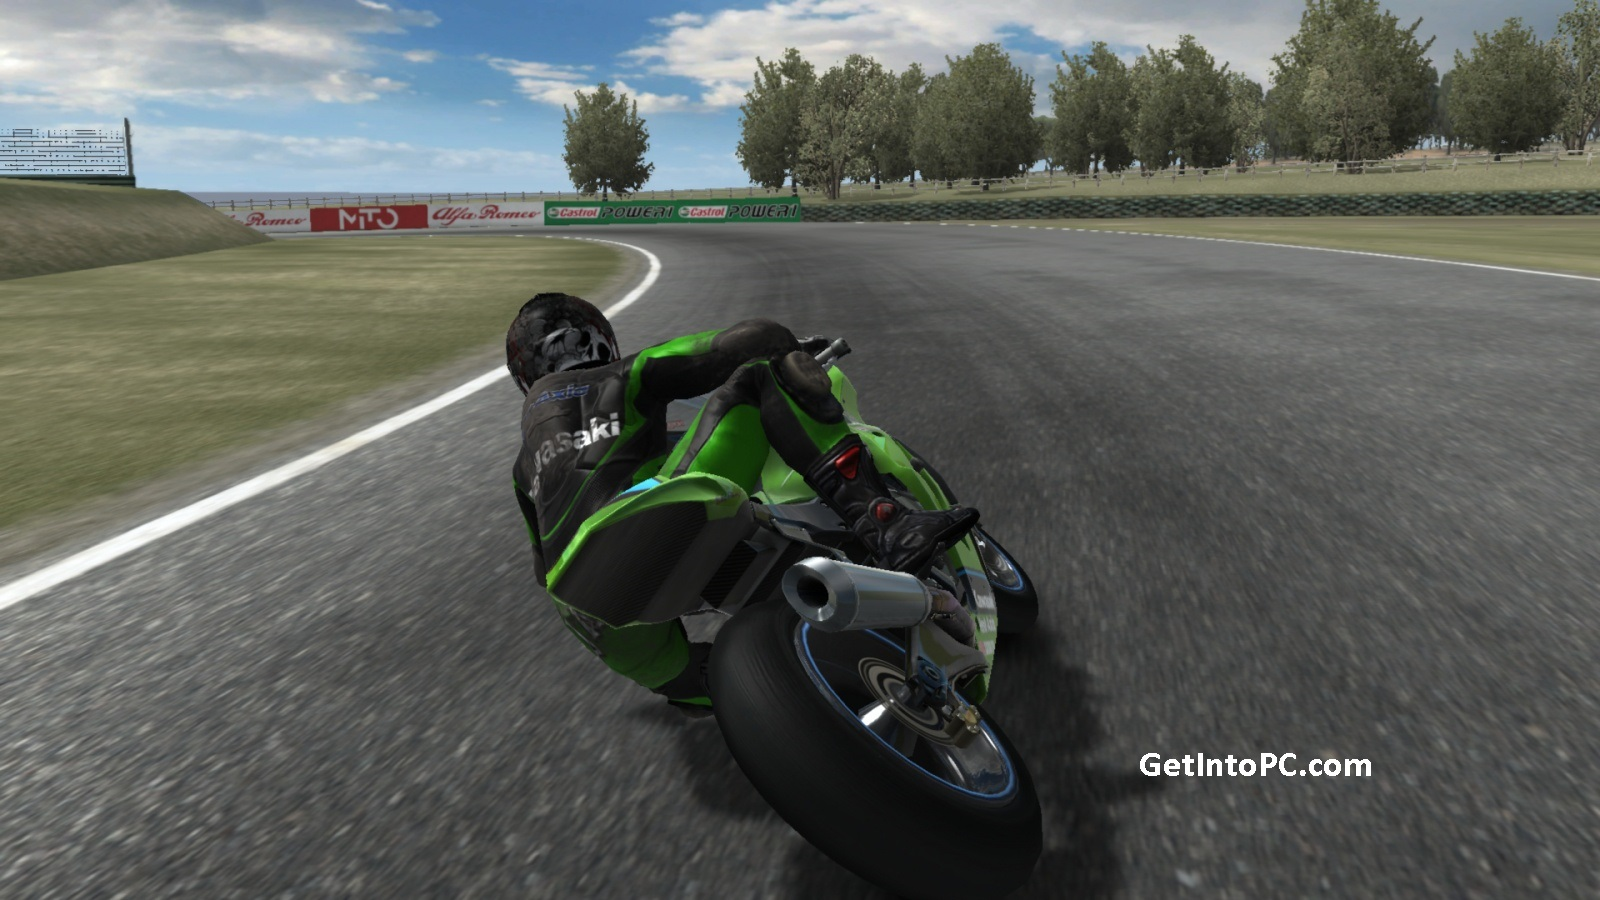 Bike Games For Boys Free Download This Bike racing game has